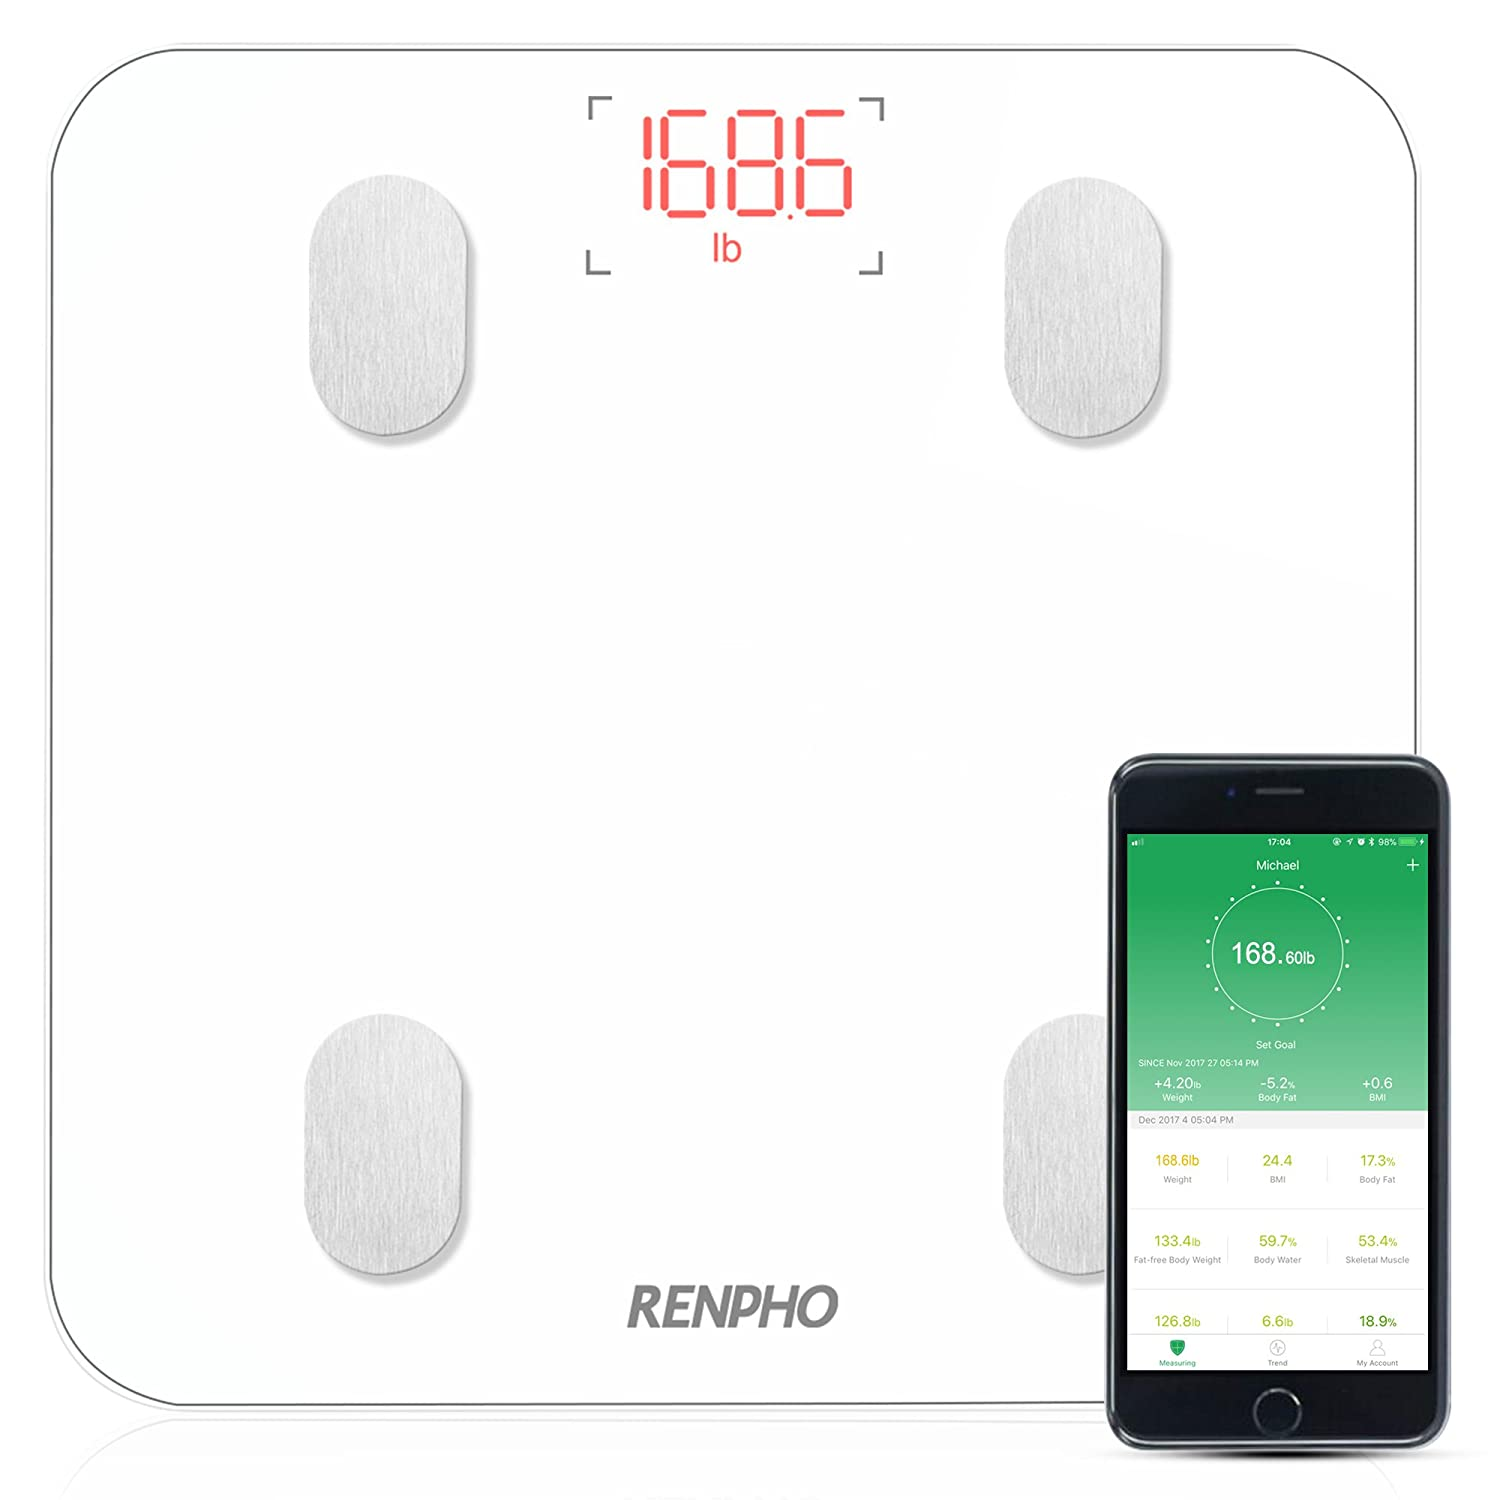 RENPHO Bluetooth Body Fat Scale with iOS and Android APP Smart Digital Bathroom Scale for Body Weight, Body Fat,Body Water, Skeletal Muscle,Muscle Mass,Bone Mass, Protein,BMI,BMR, Metabolic Age